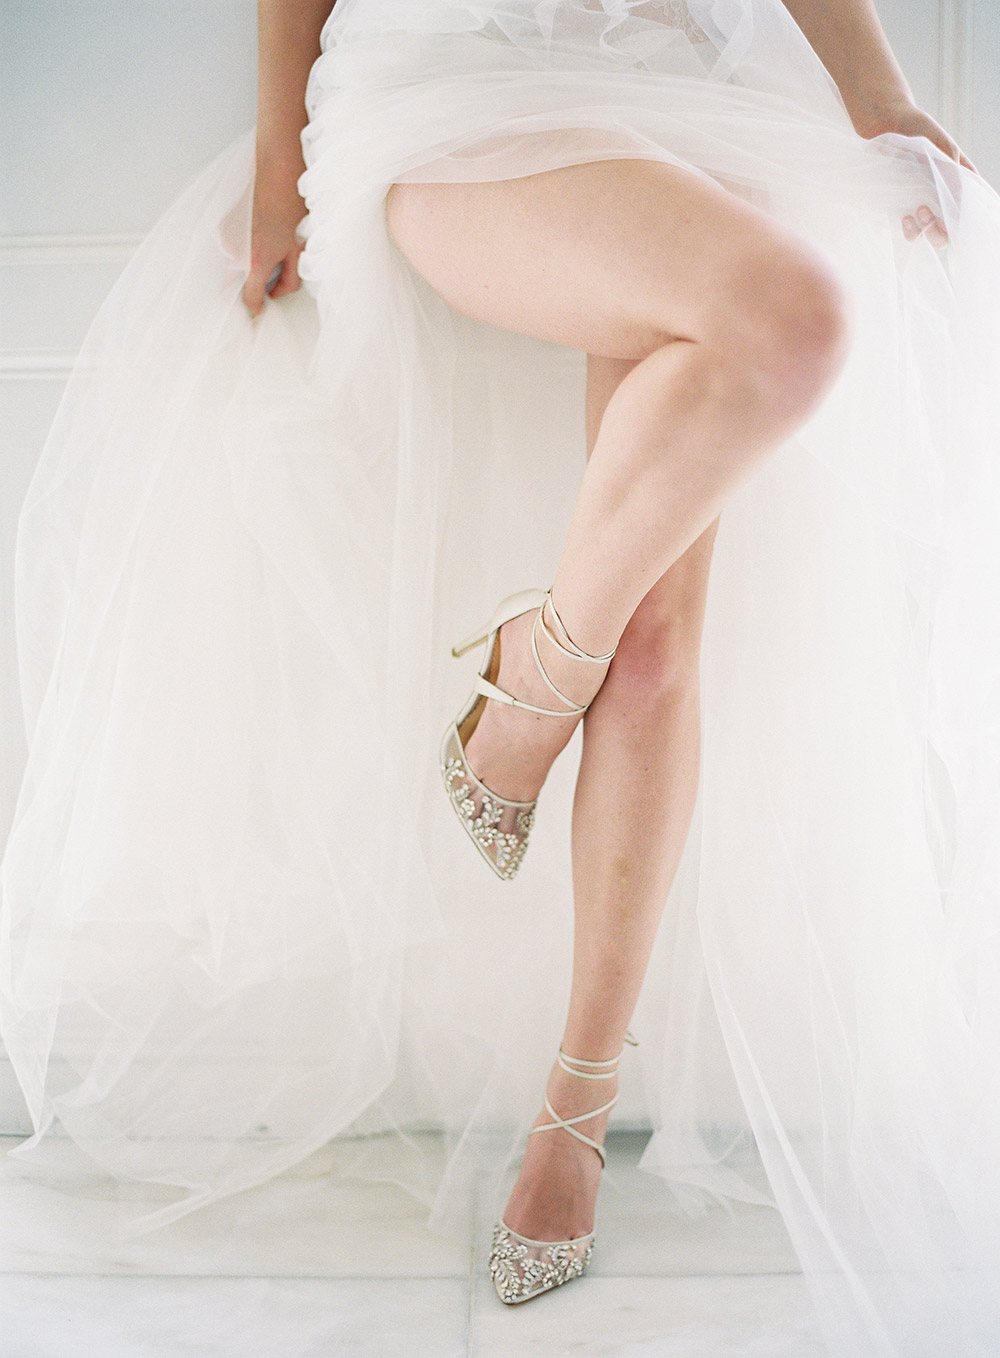 Bella Belle 2017 Bridal Shoes Collection. www.theweddingnotebook.com